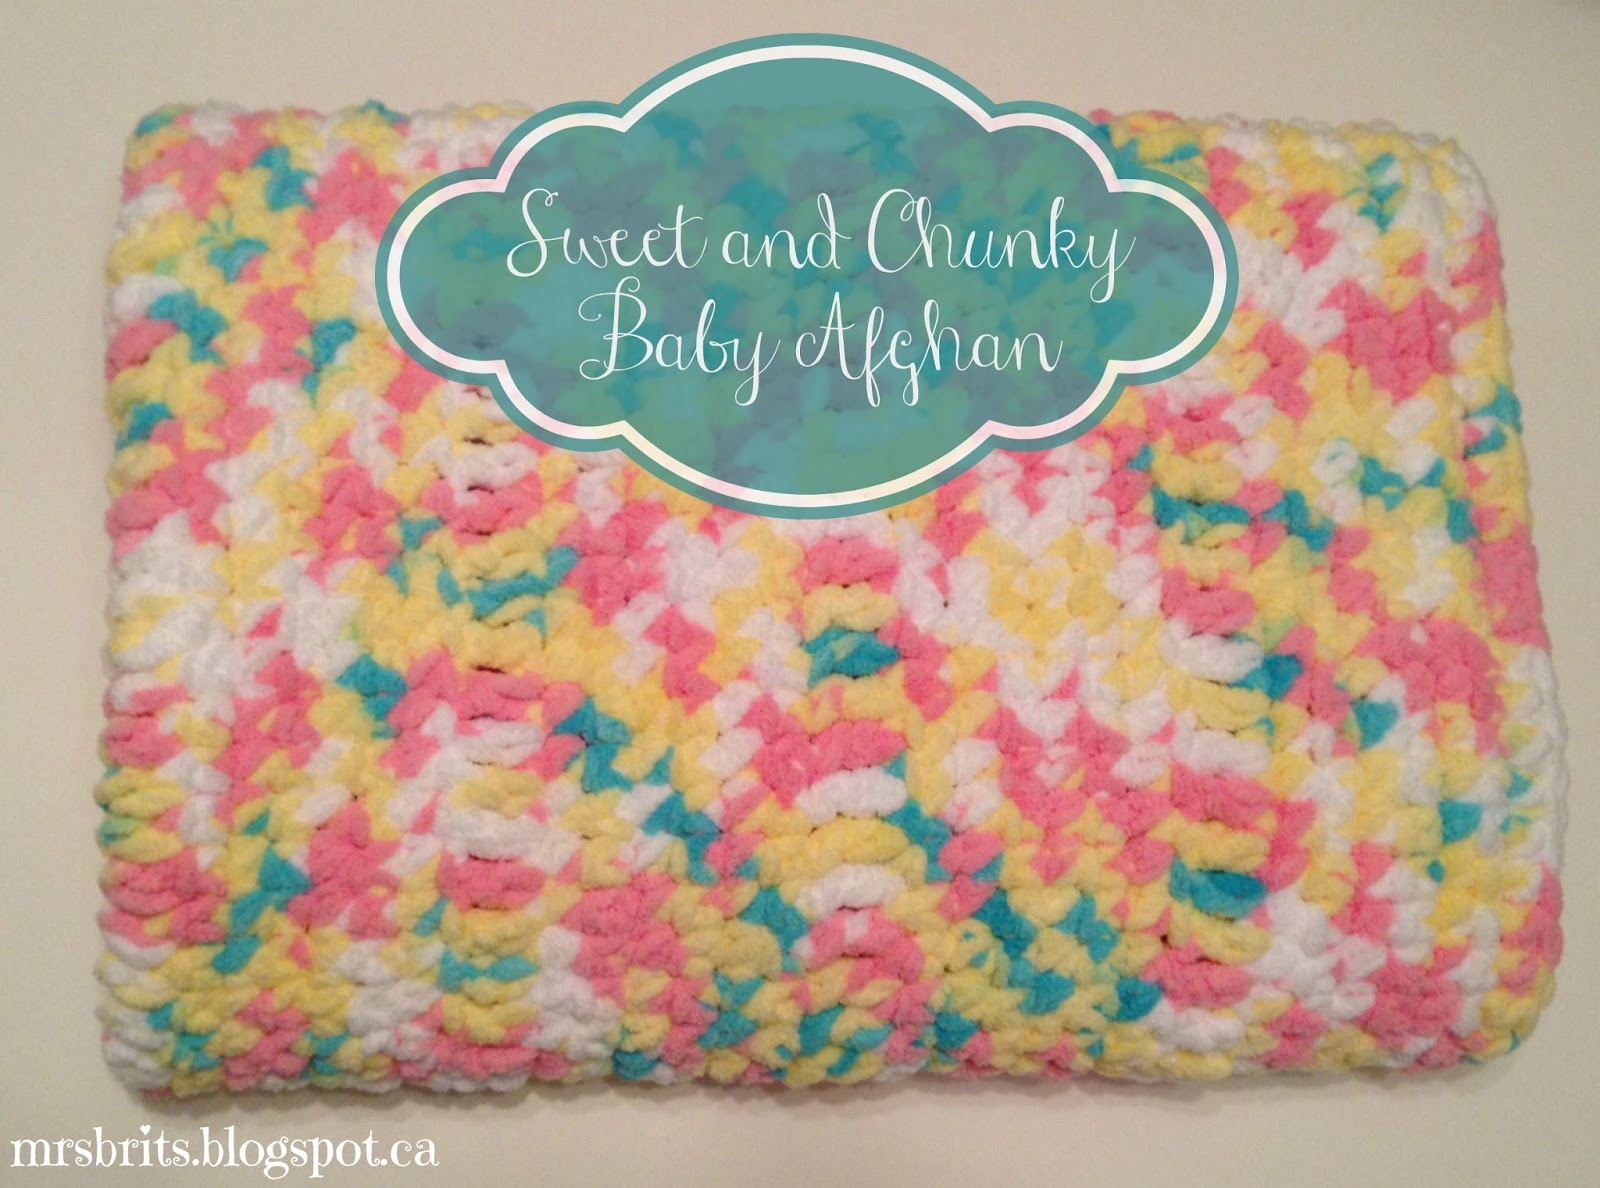 Mrsbrits sweet and chunky baby afghan crochet pattern sweet and chunky baby afghan crochet pattern bankloansurffo Images